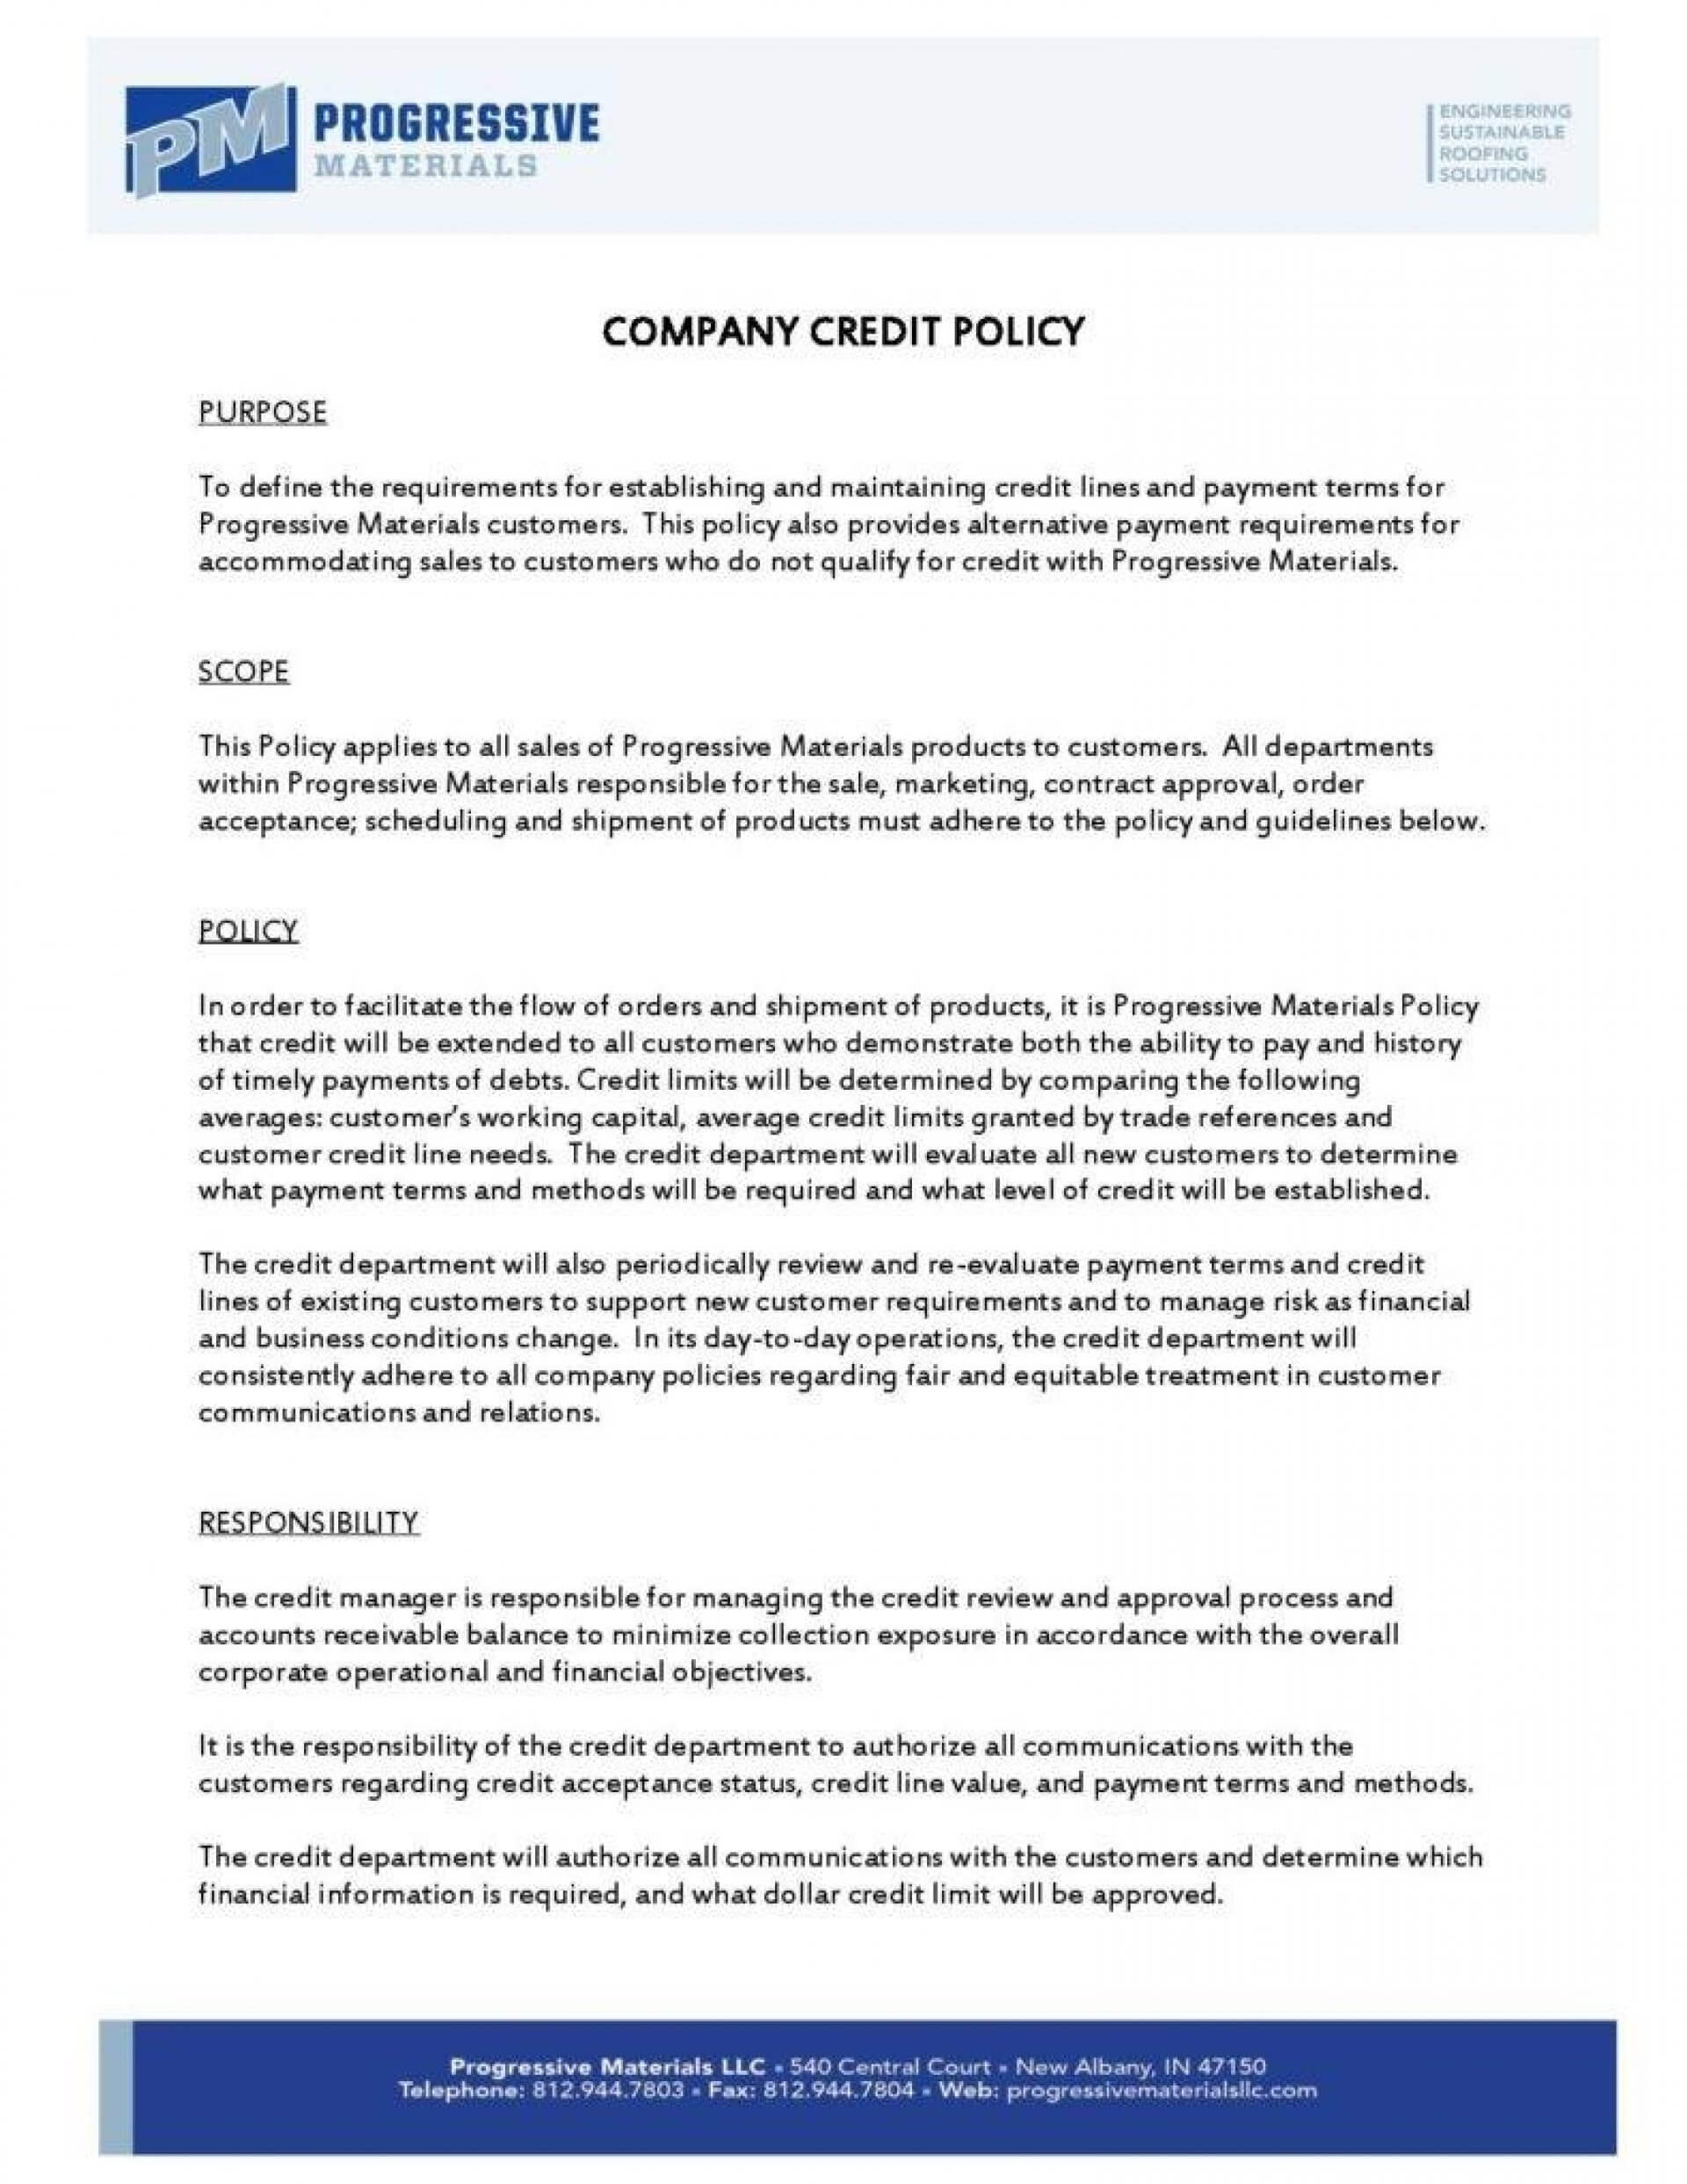 002 Template Ideas Dress Code Policy Company Credit Page Intended For Company Credit Card Policy Template